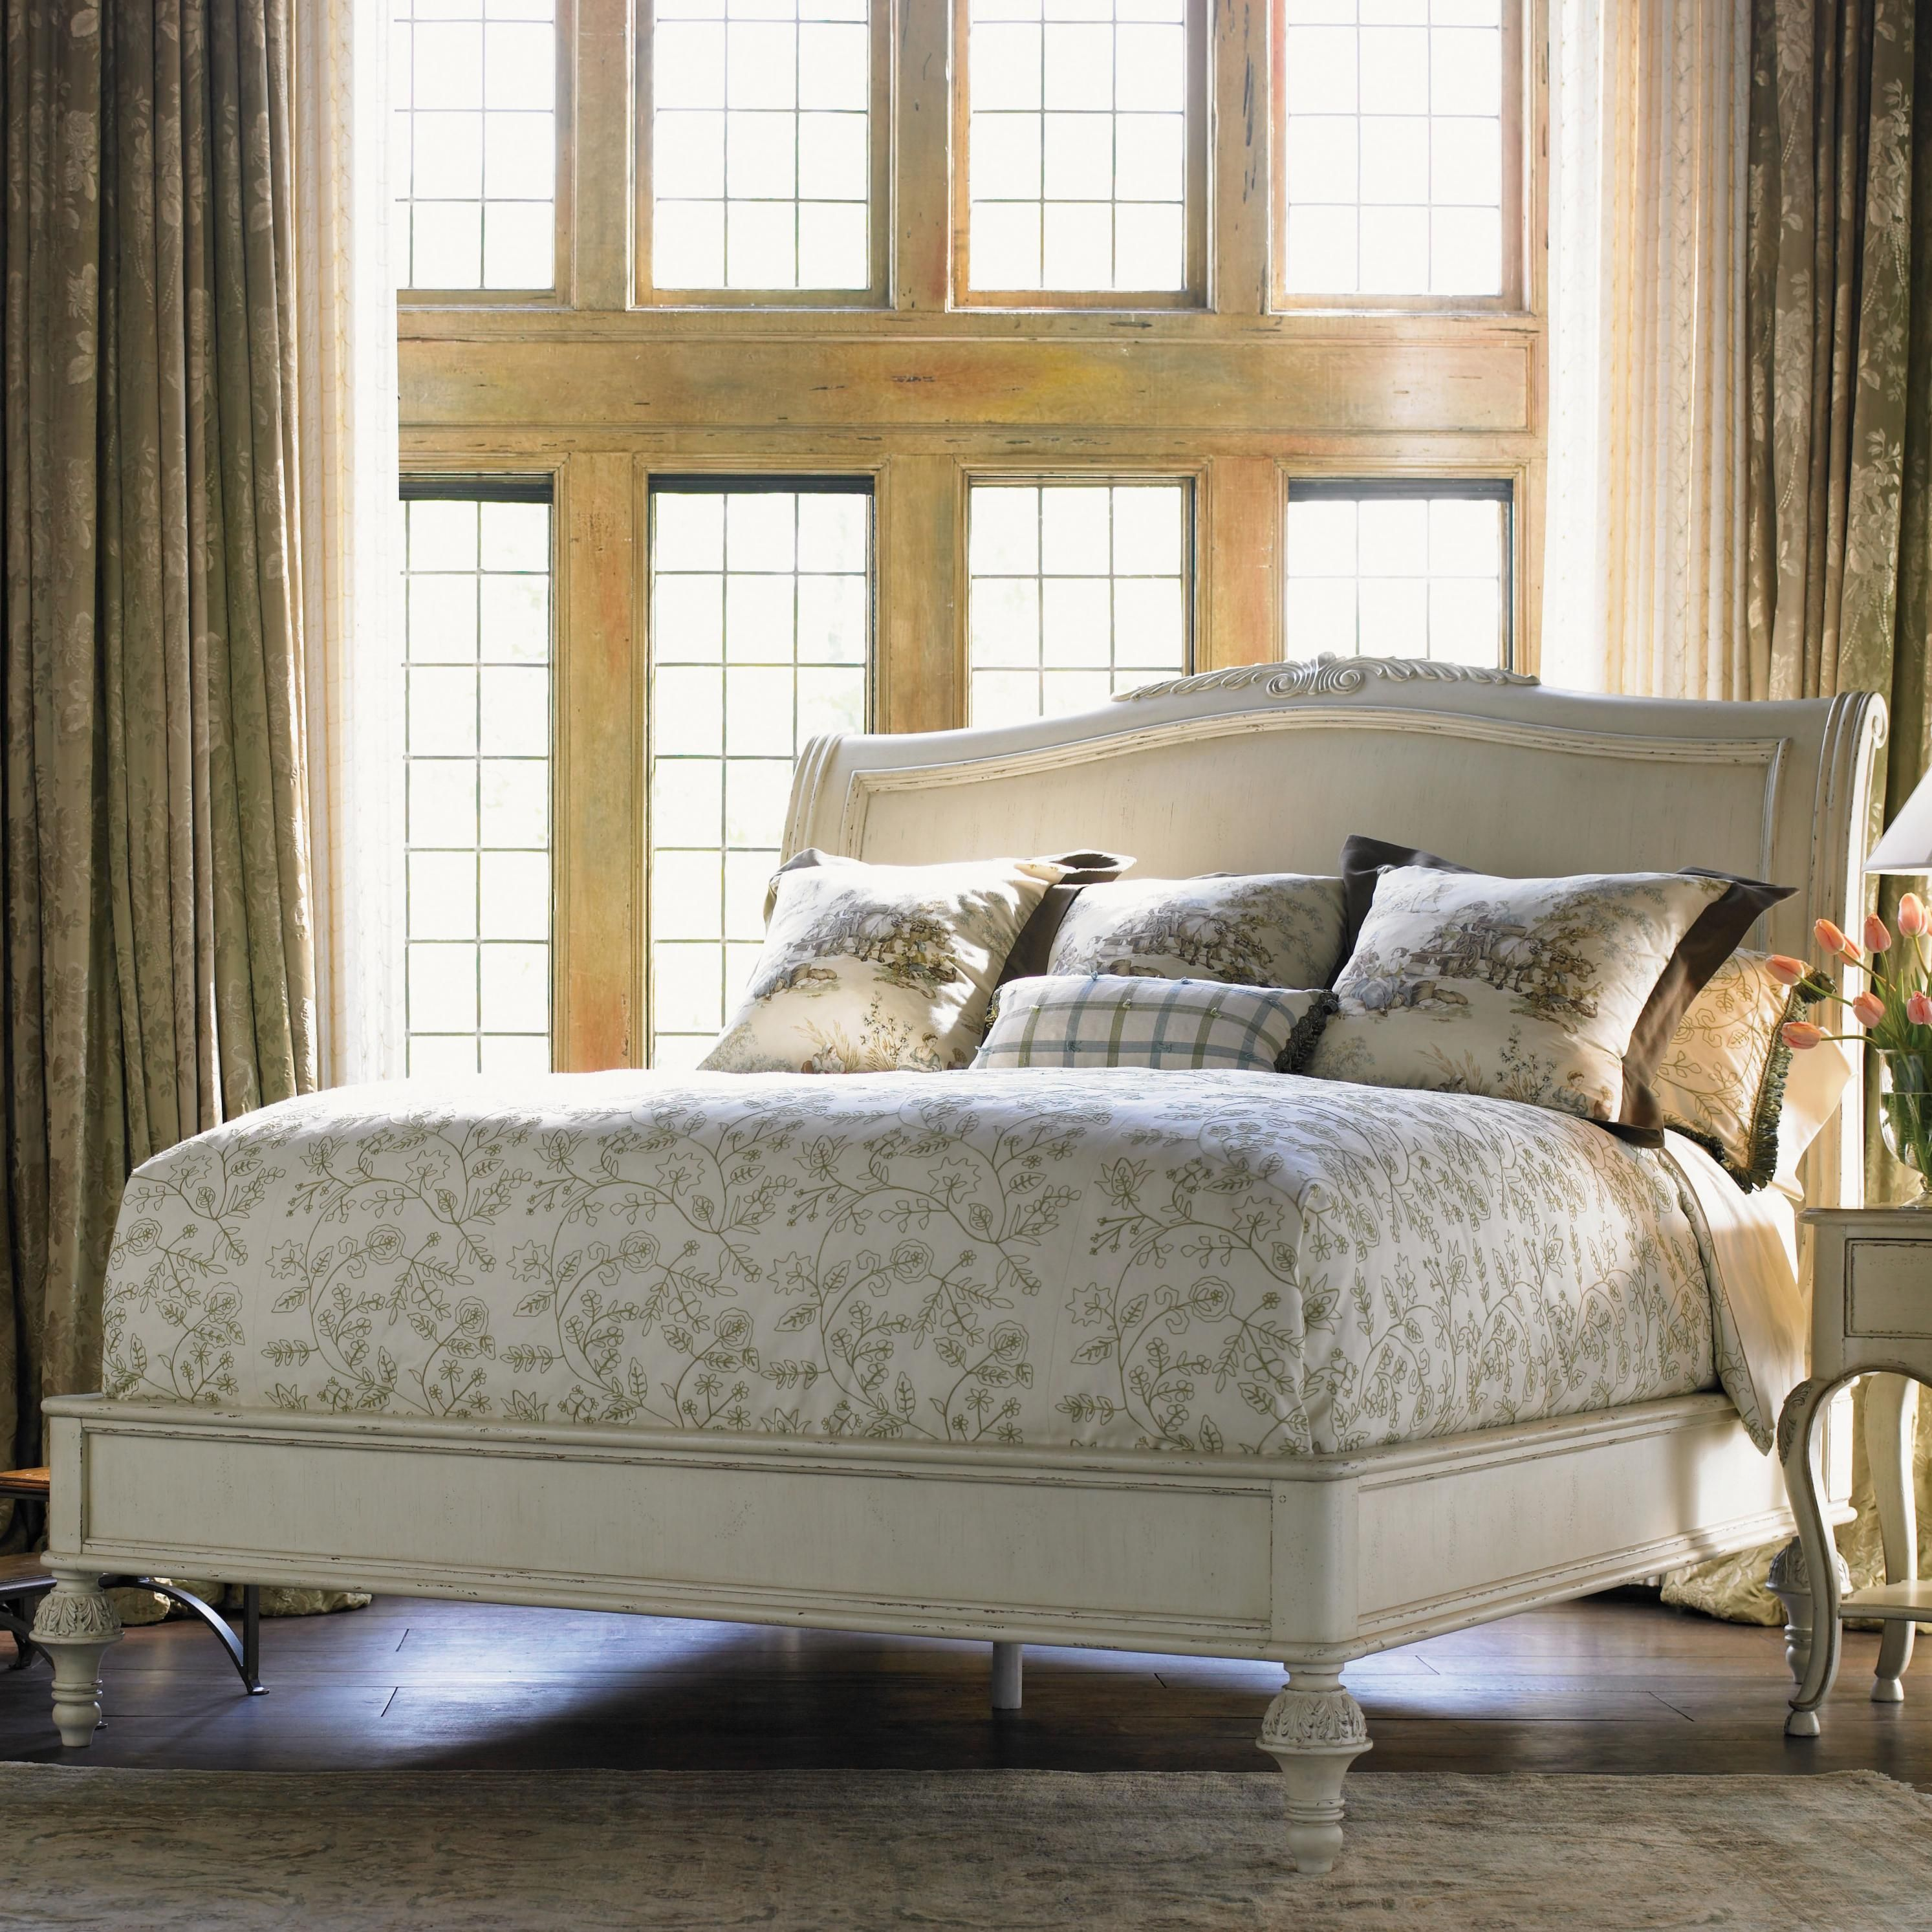 At Home In Belle Maison (AW) By Drexel Heritage®